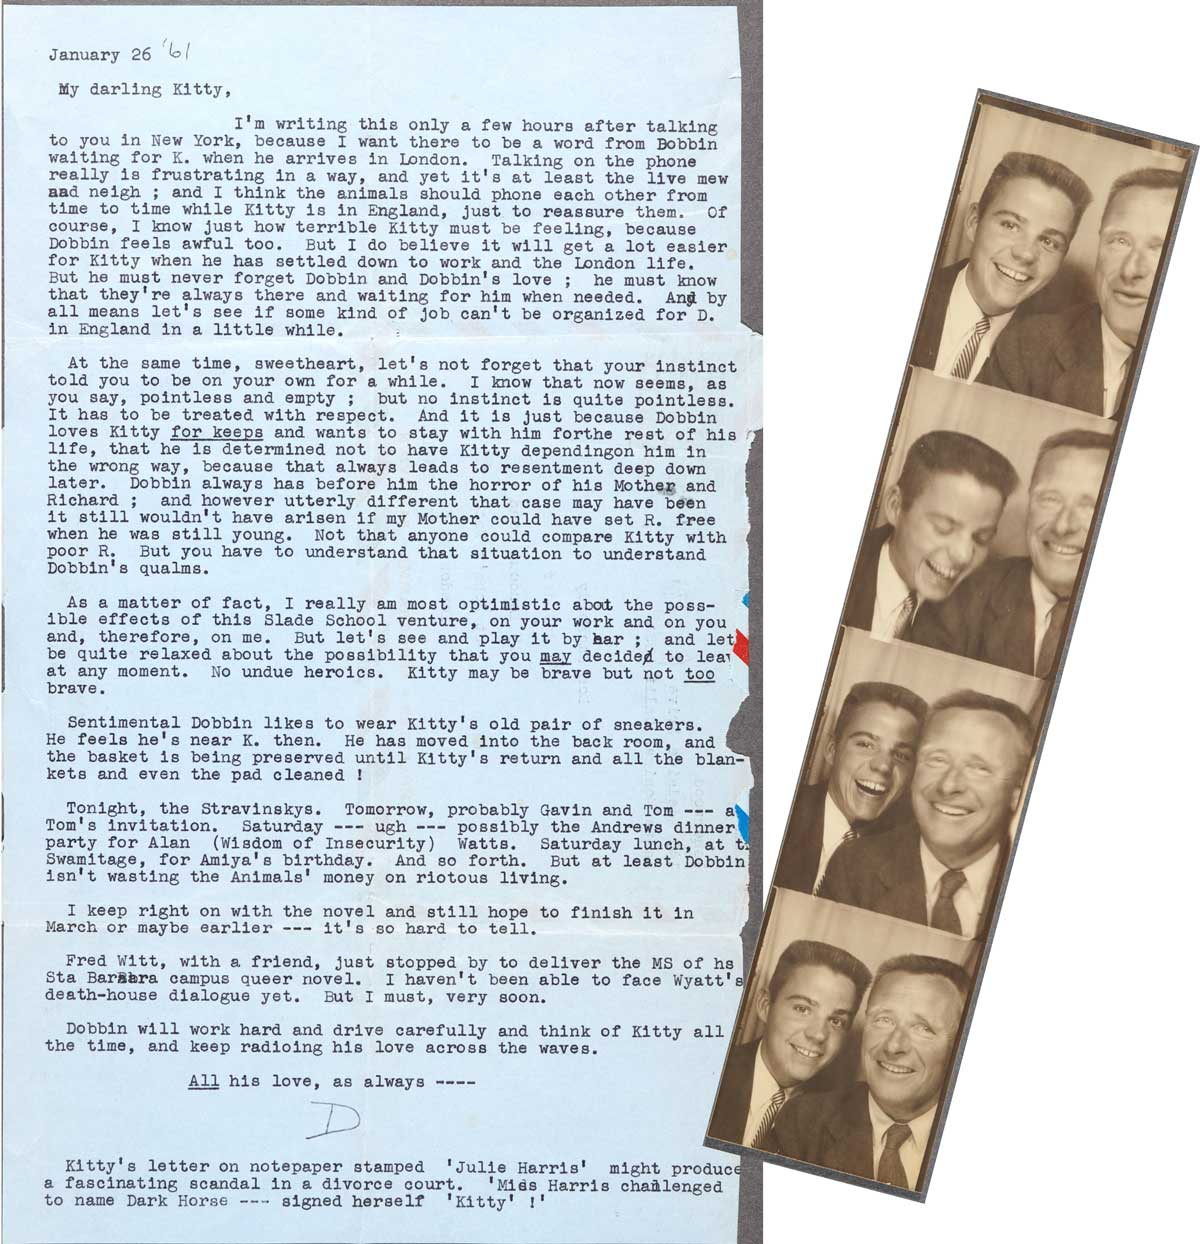 Christopher Isherwood's letter to Don Bachardy dated January 26, 1961 and photo booth photos of Don Bachardy and Christopher Isherwood dated March 30, 1953 | The Huntington Library, Art Museum, and Botanical Gardens